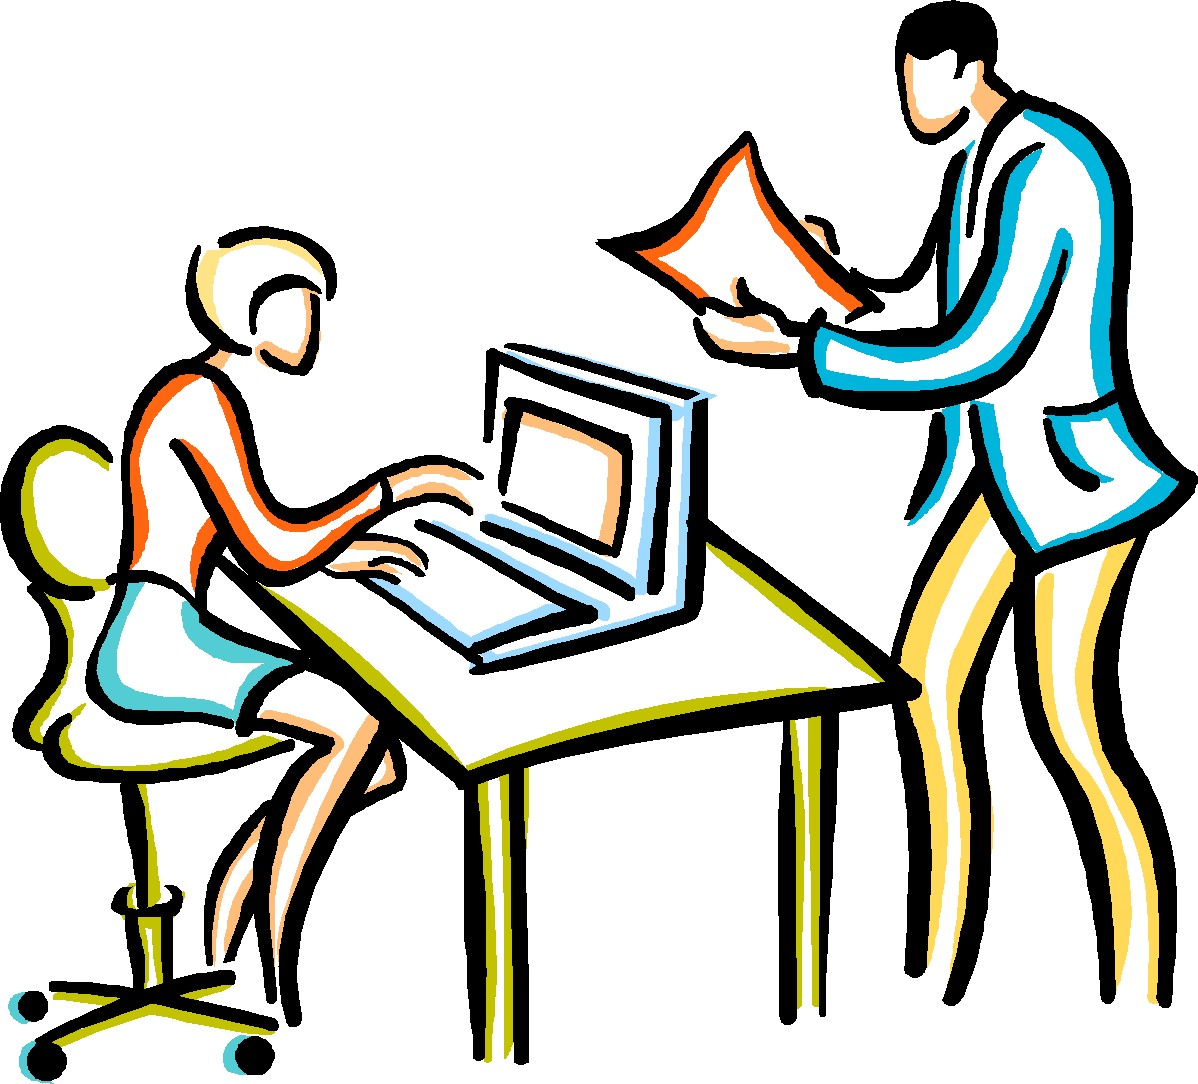 1198x1084 Image Of Computer Lab Clipart